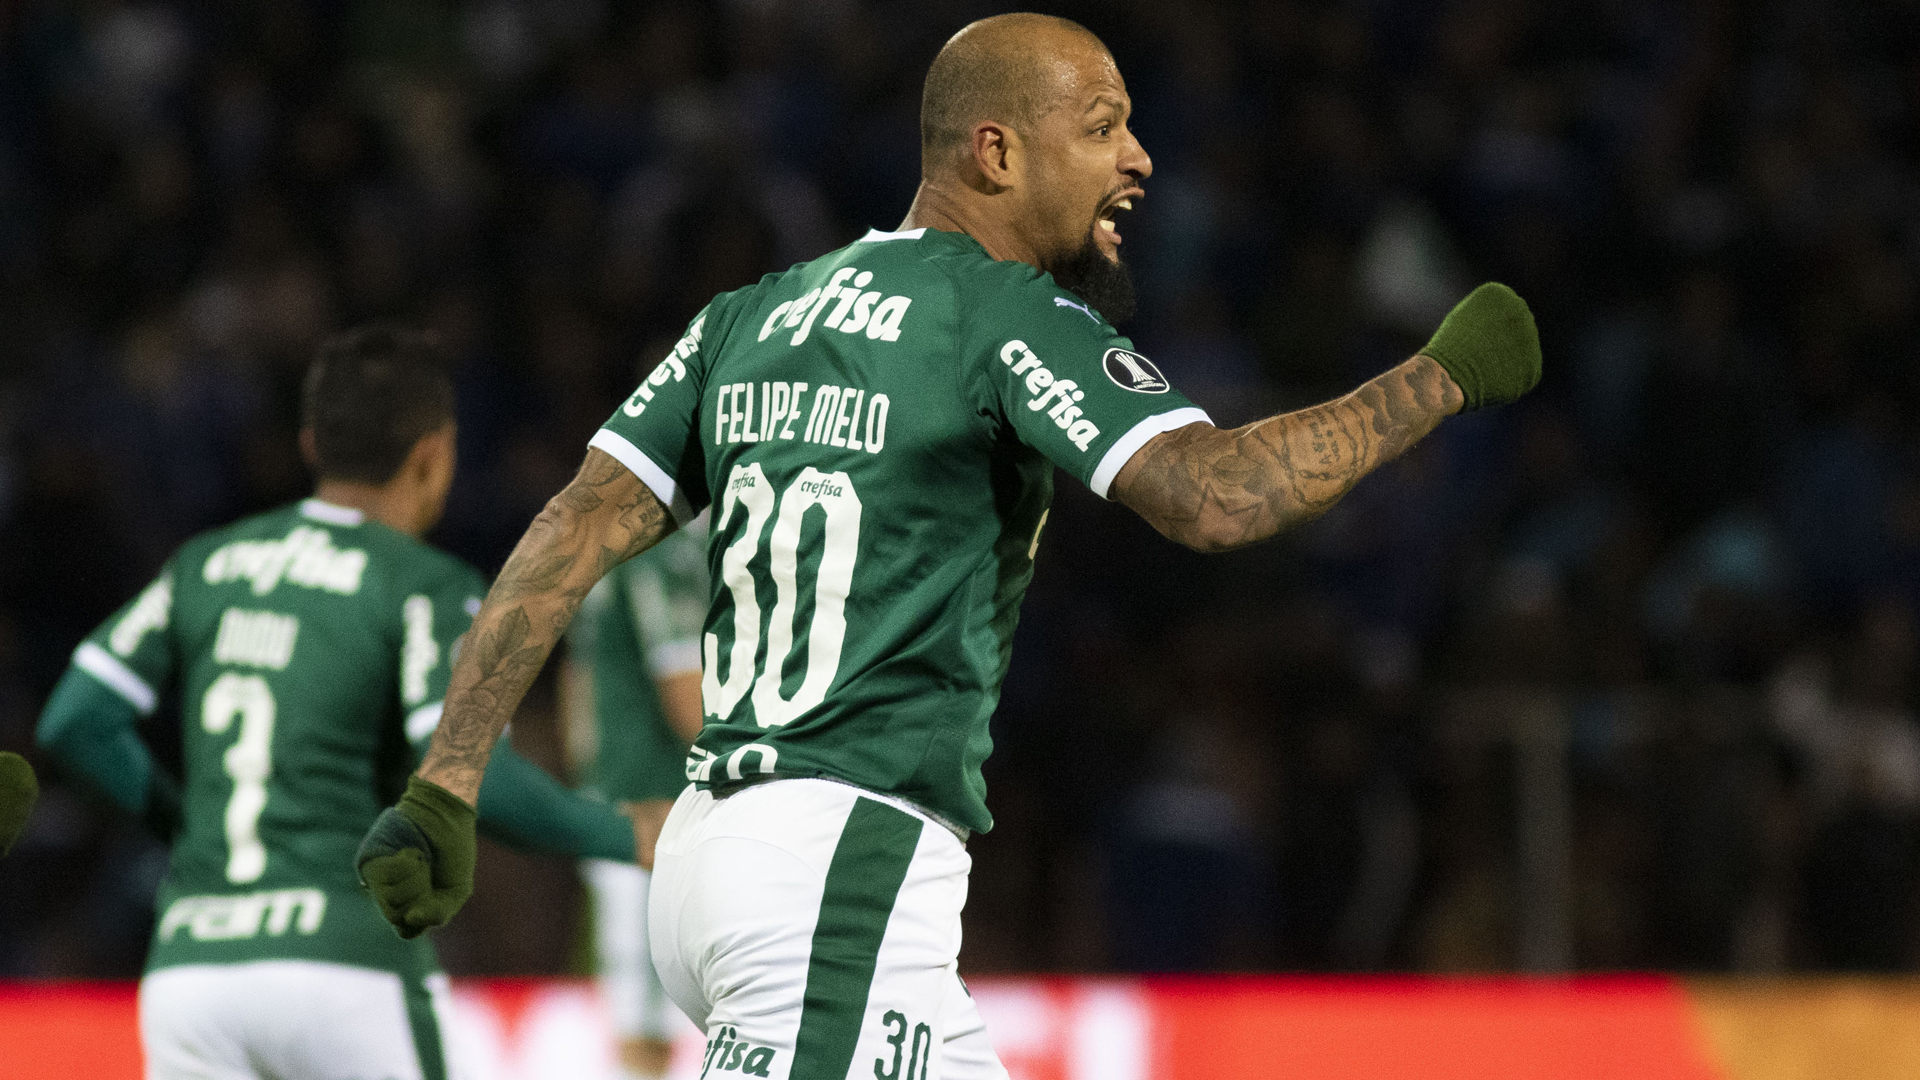 Copa Libertadores Review: Palmeiras fight back for draw, River Plate held